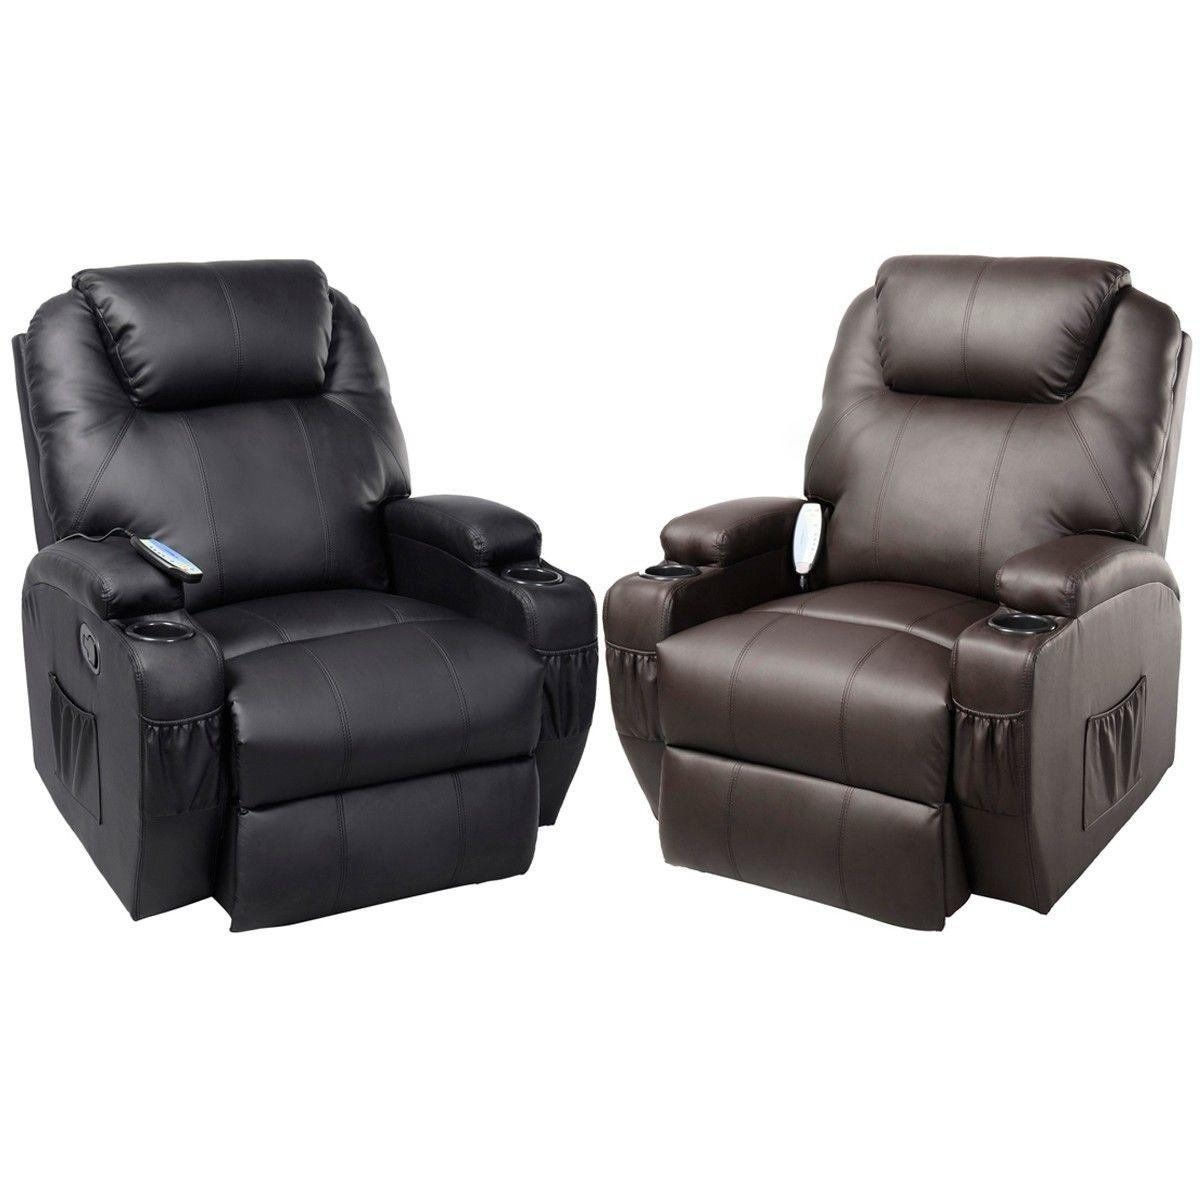 Ergonomic Heated Massage Recliner Sofa Chair Deluxe Lounge Inside Ergonomic Sofas And Chairs (Image 9 of 20)